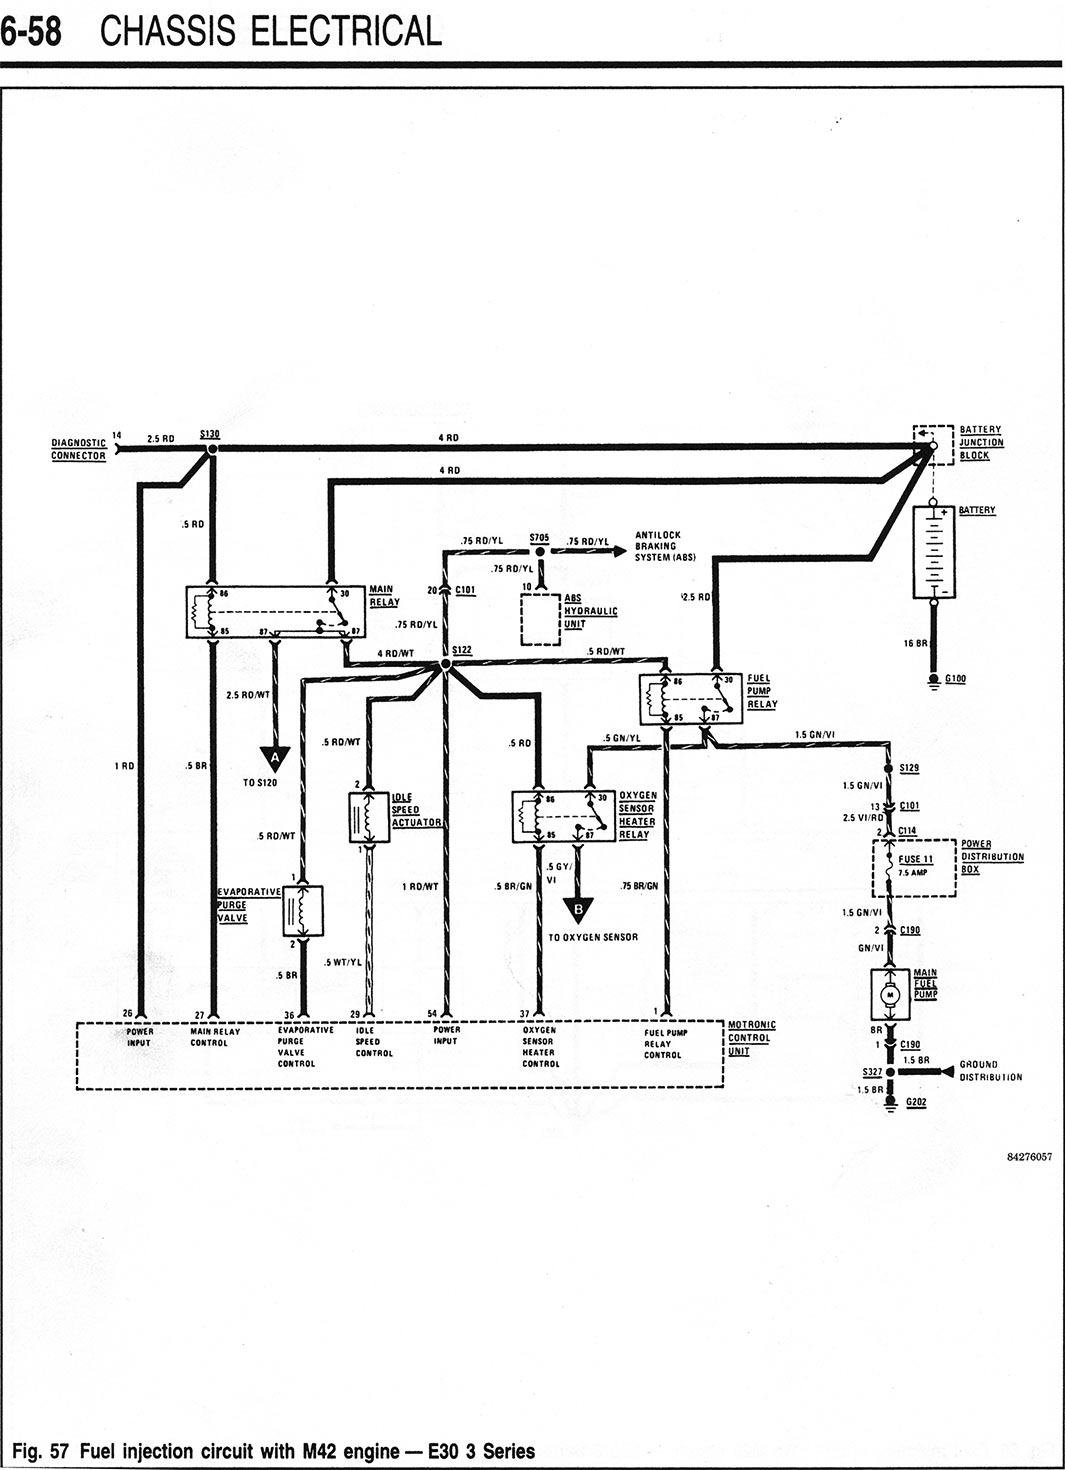 PG658 e30 wiring diagram e30 amplifier wiring diagram \u2022 wiring diagrams BMW E46 M3 Black at eliteediting.co